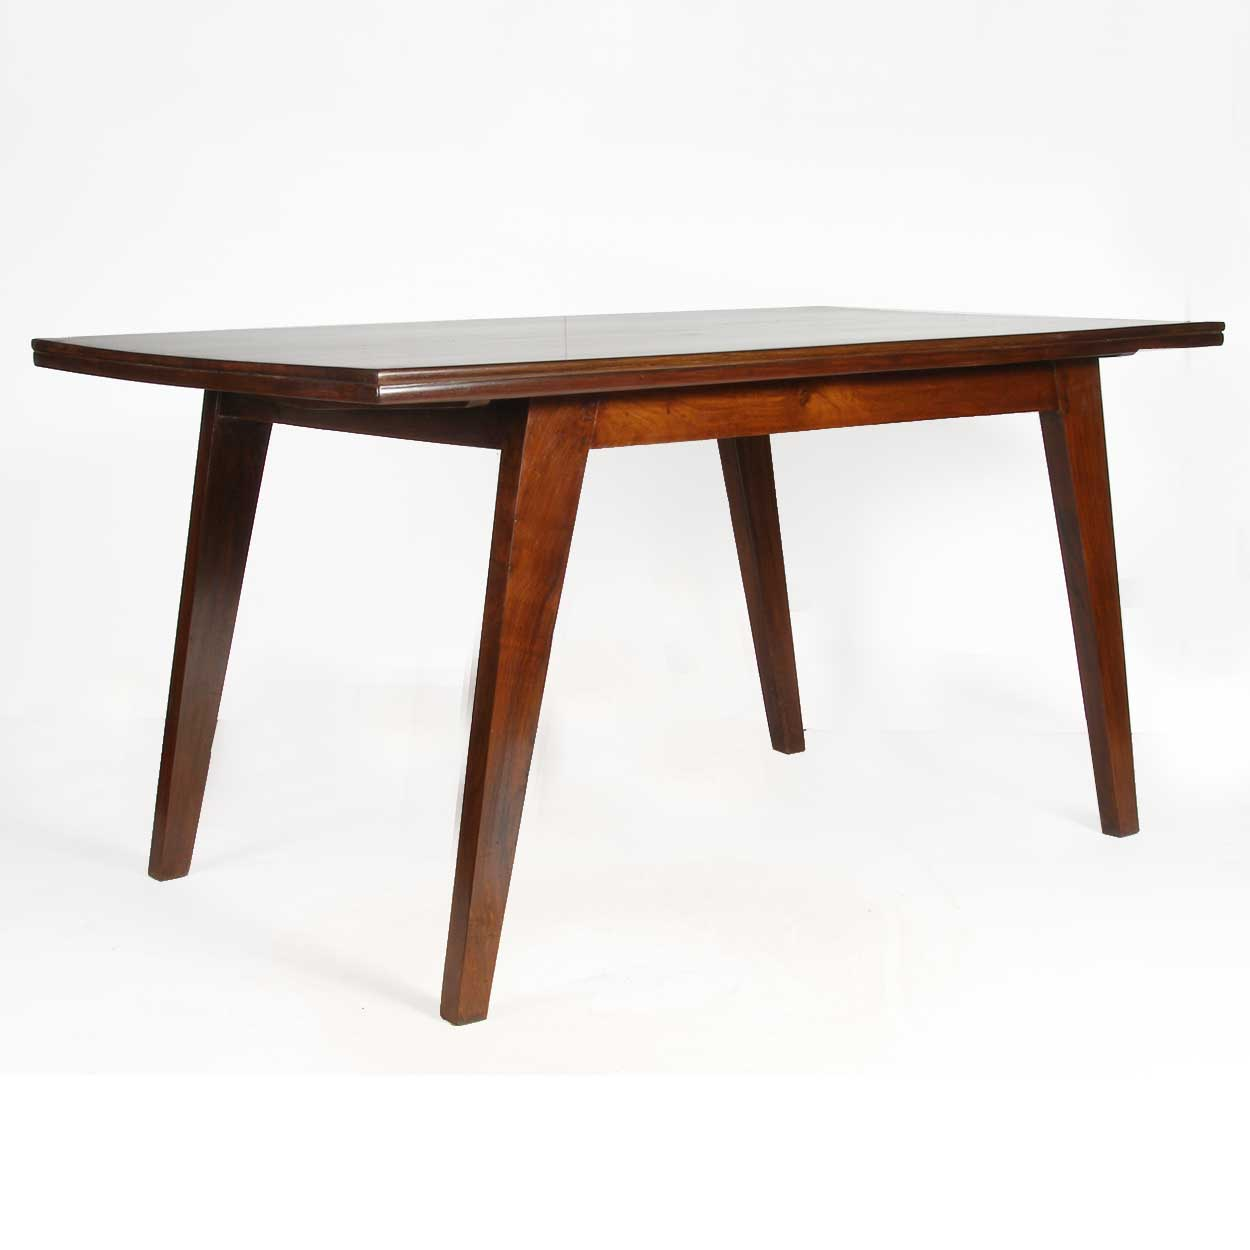 ref t2834 pierre jeanneret teak dining table from chandigarh india for sale. Black Bedroom Furniture Sets. Home Design Ideas